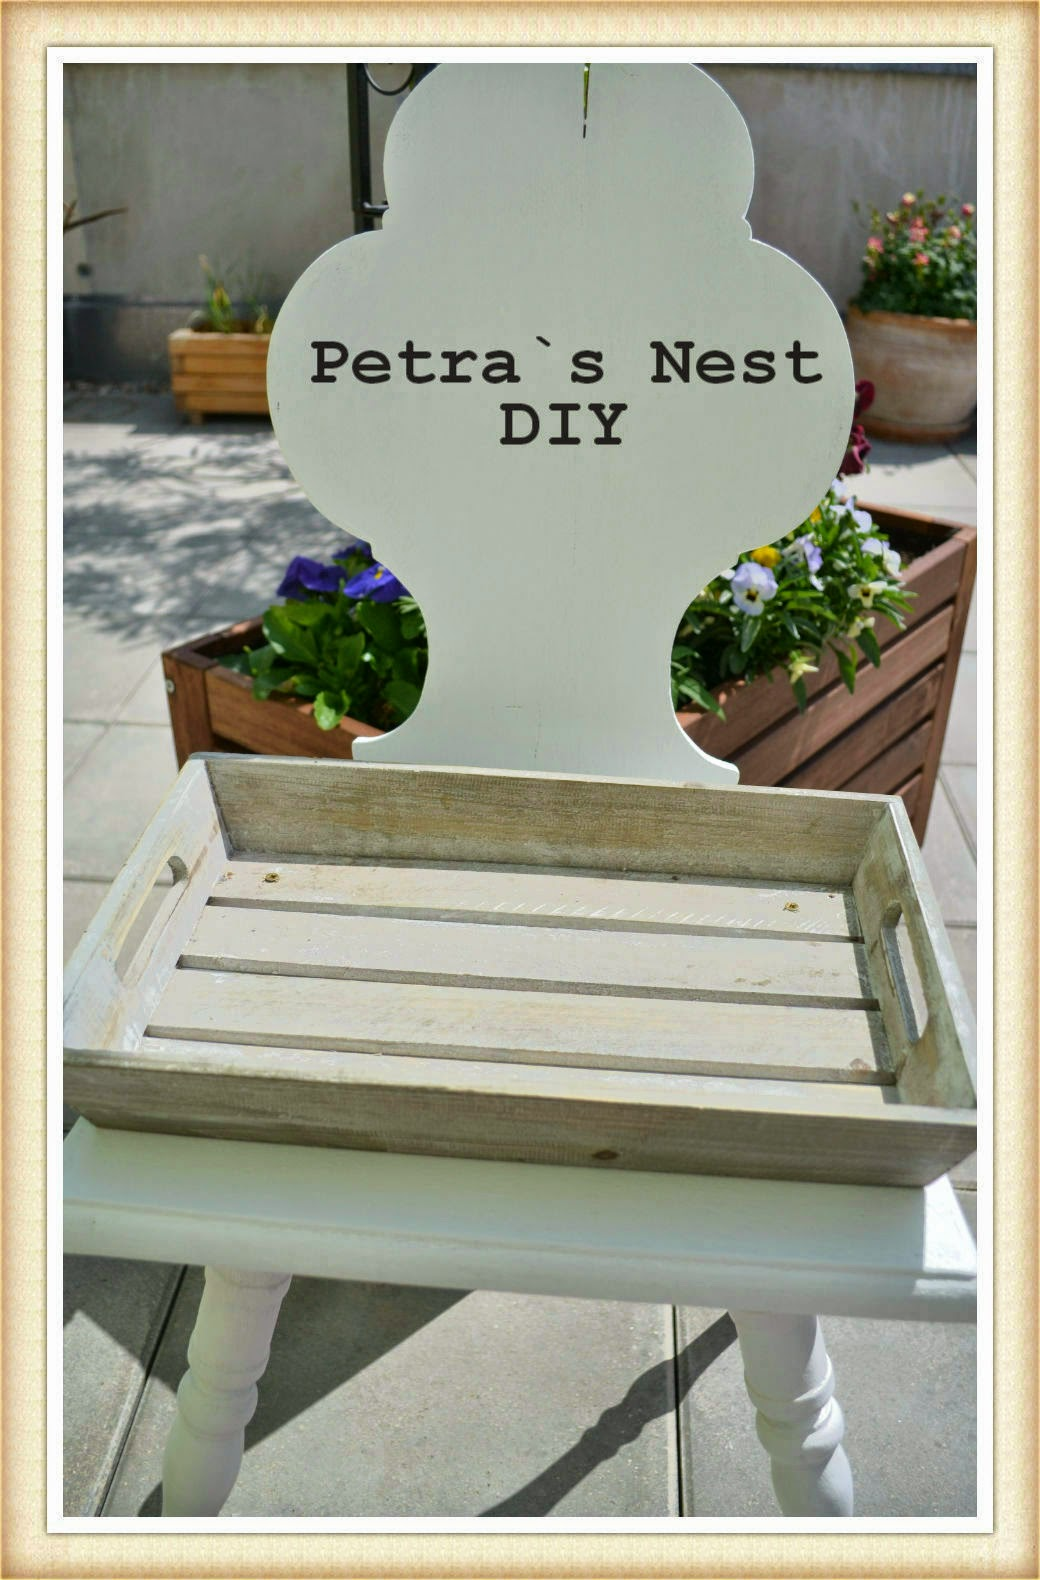 petra 39 s nest diy ein alter stuhl ein briges tablett farbe steine erde und pflanzen. Black Bedroom Furniture Sets. Home Design Ideas